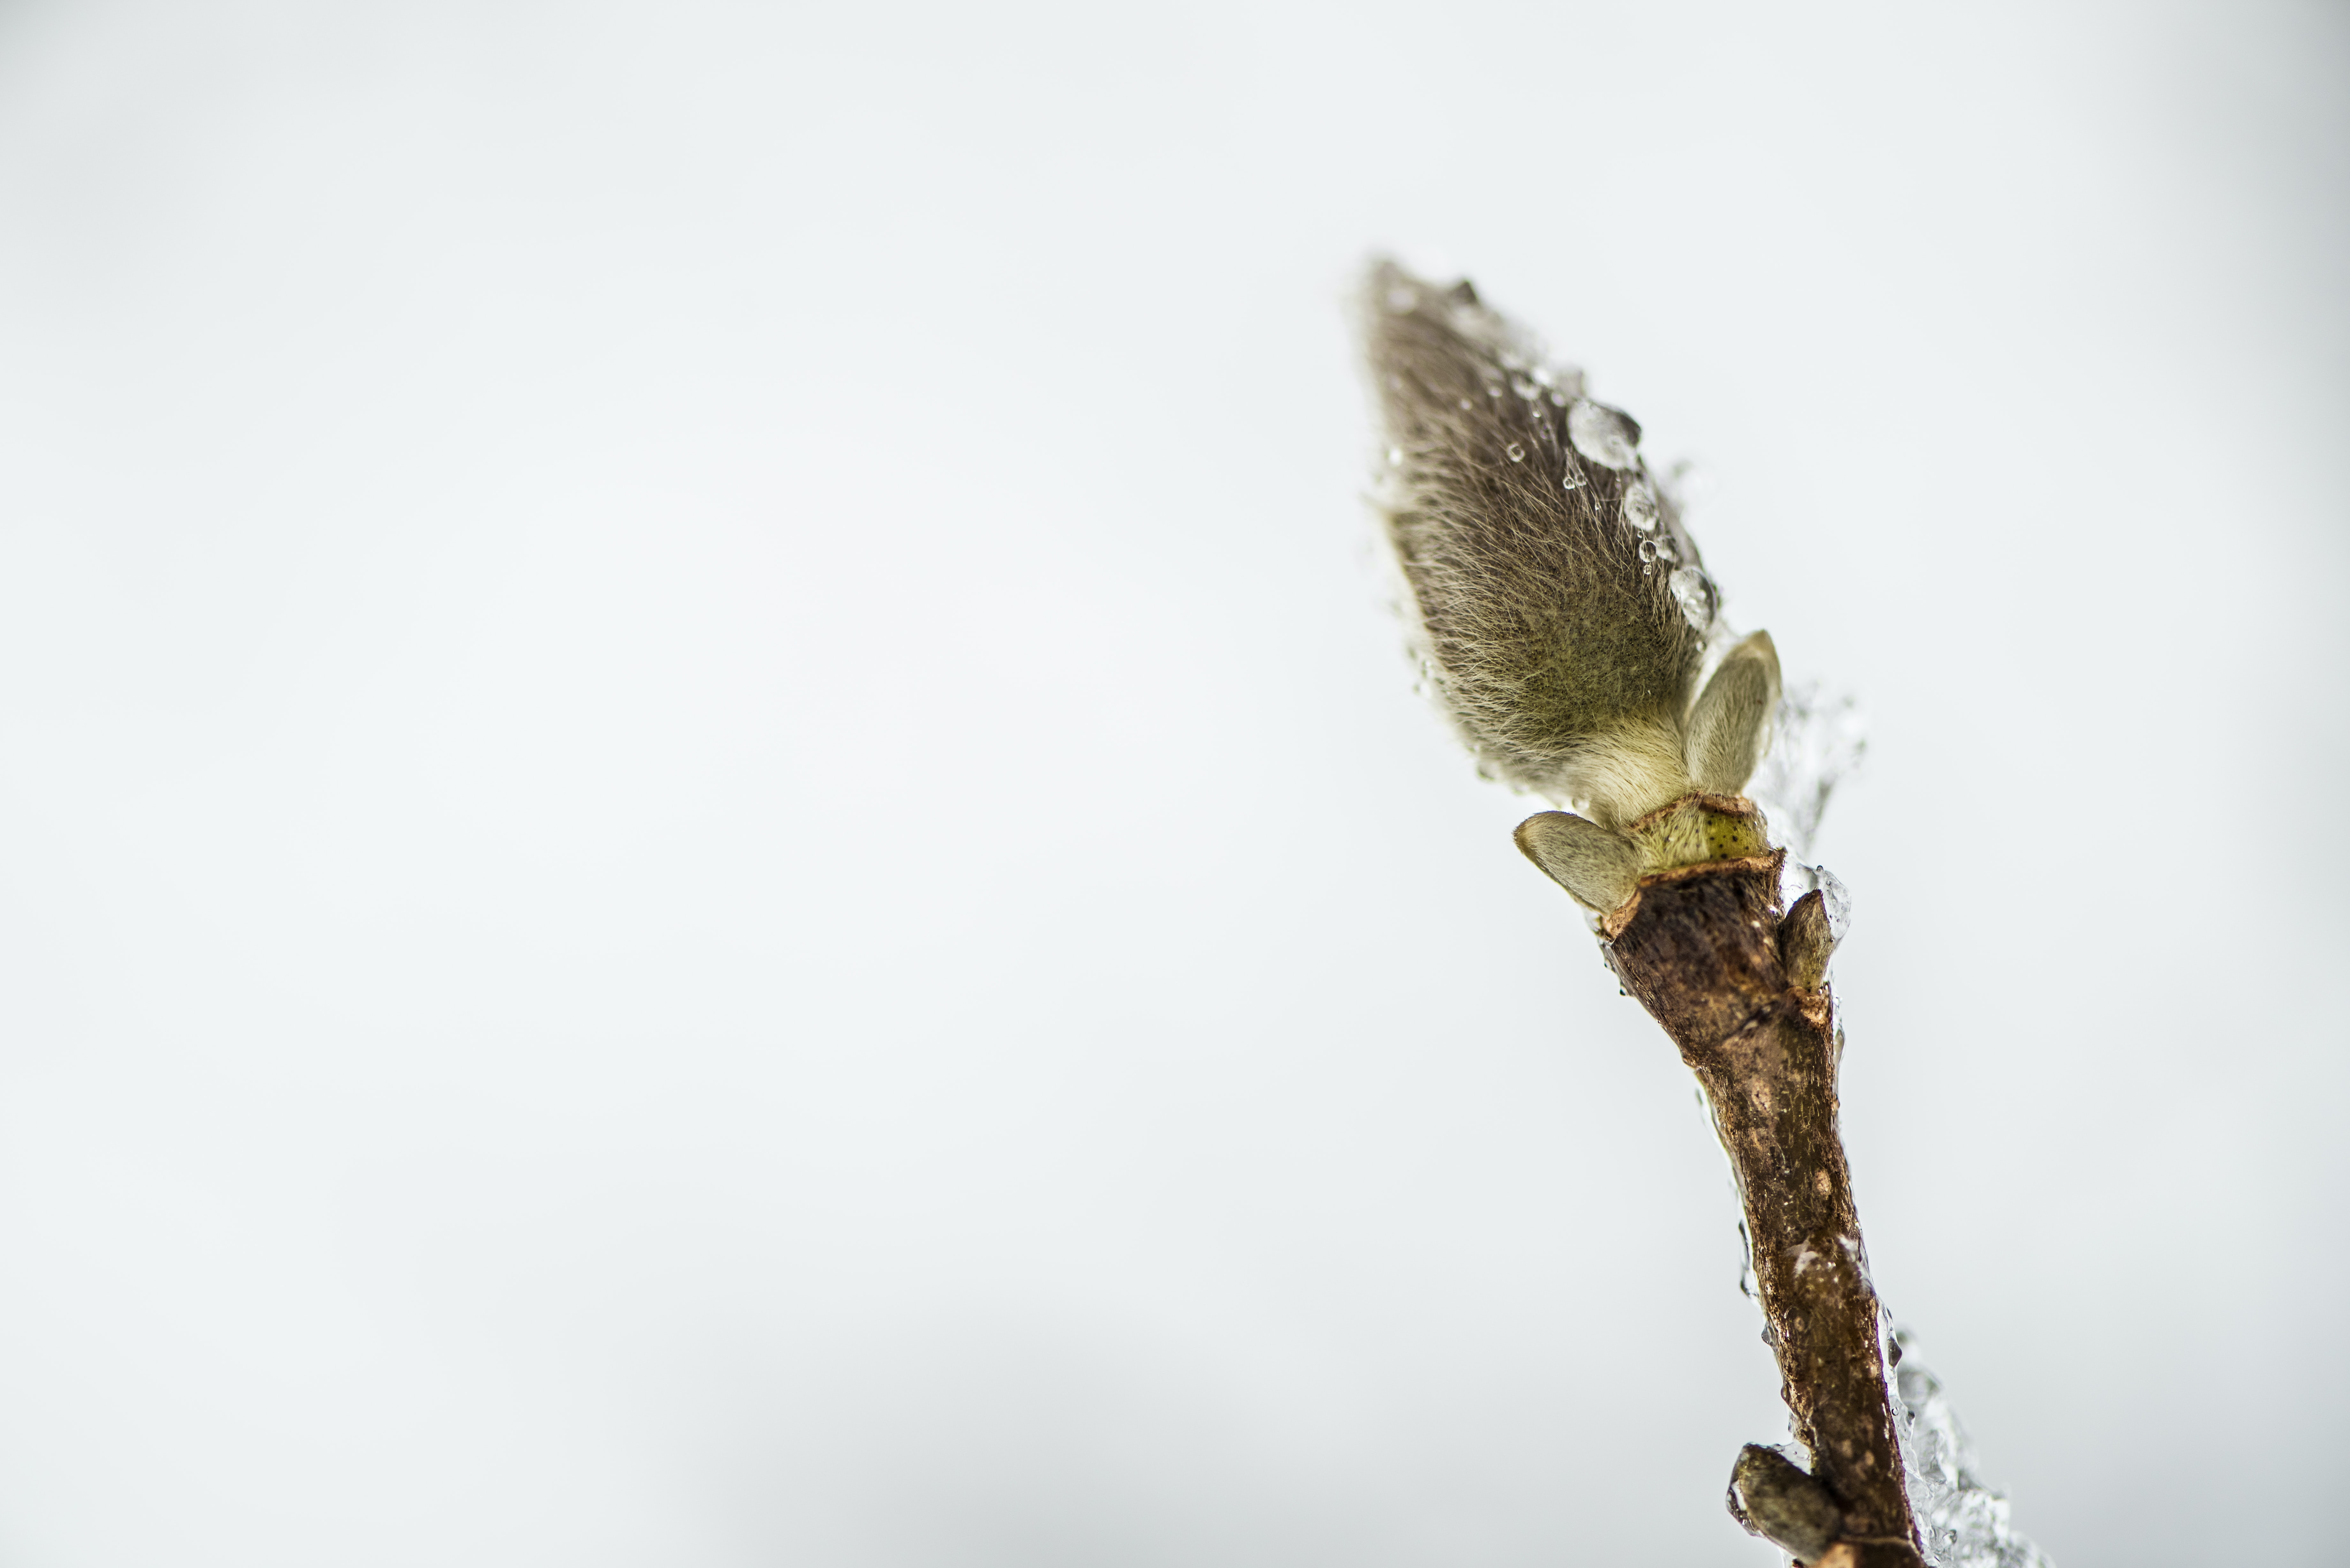 A close-up of a pussy willow catkin covered in ice crystals against a white background